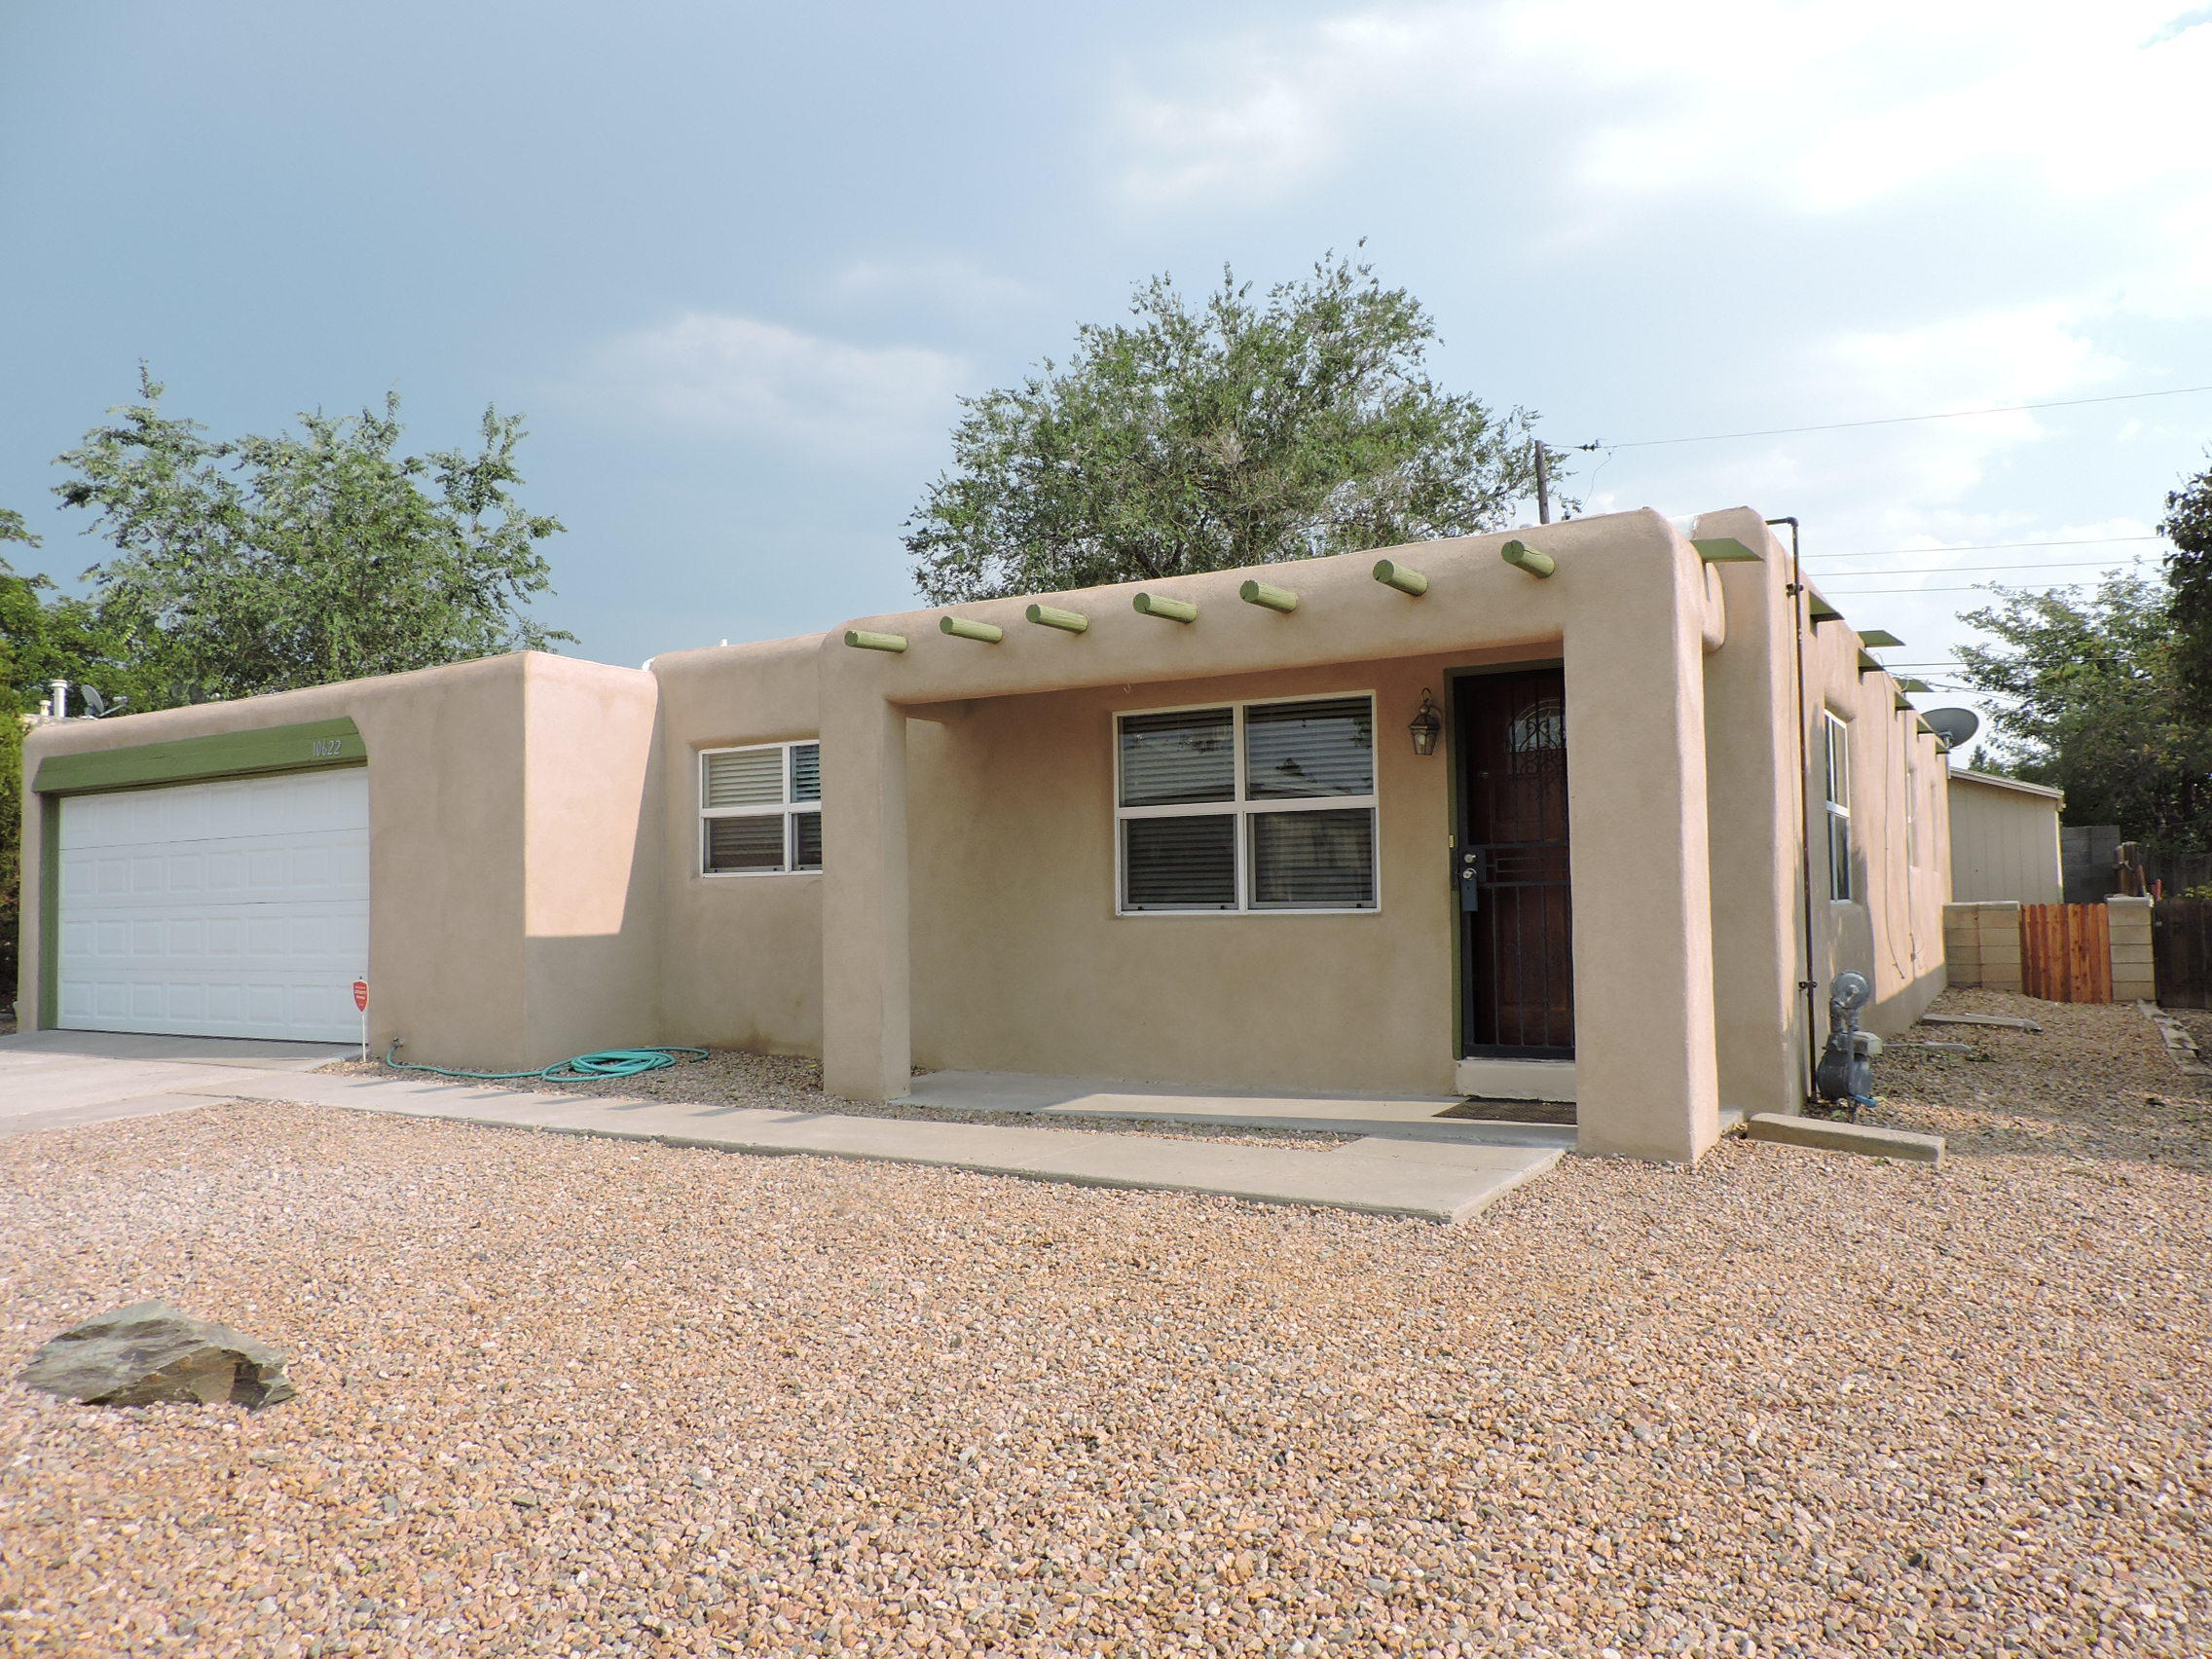 Cute NM style home, in a quaint neighborhood.  Nearby elementary school and many other amenities.  TPO Roof installed 2018, warranty transferable, completely re stuccoed July 2020.   Bathrooms remodeled, tile and hardwood floors throughout, no carpet! Kitchen and dining open area perfect for entertaining.  Updated Pella vinyl windows, new kitchen counter tops.  Garage is oversized with extra storage space above, Back yard is large and has potential for many landscaping options.  Storage shed in backyard equipped with electricity. Baseboards being installed and floor finishes coming! Don't miss this opportunity for a great home looking for new ownership! Offer Now!